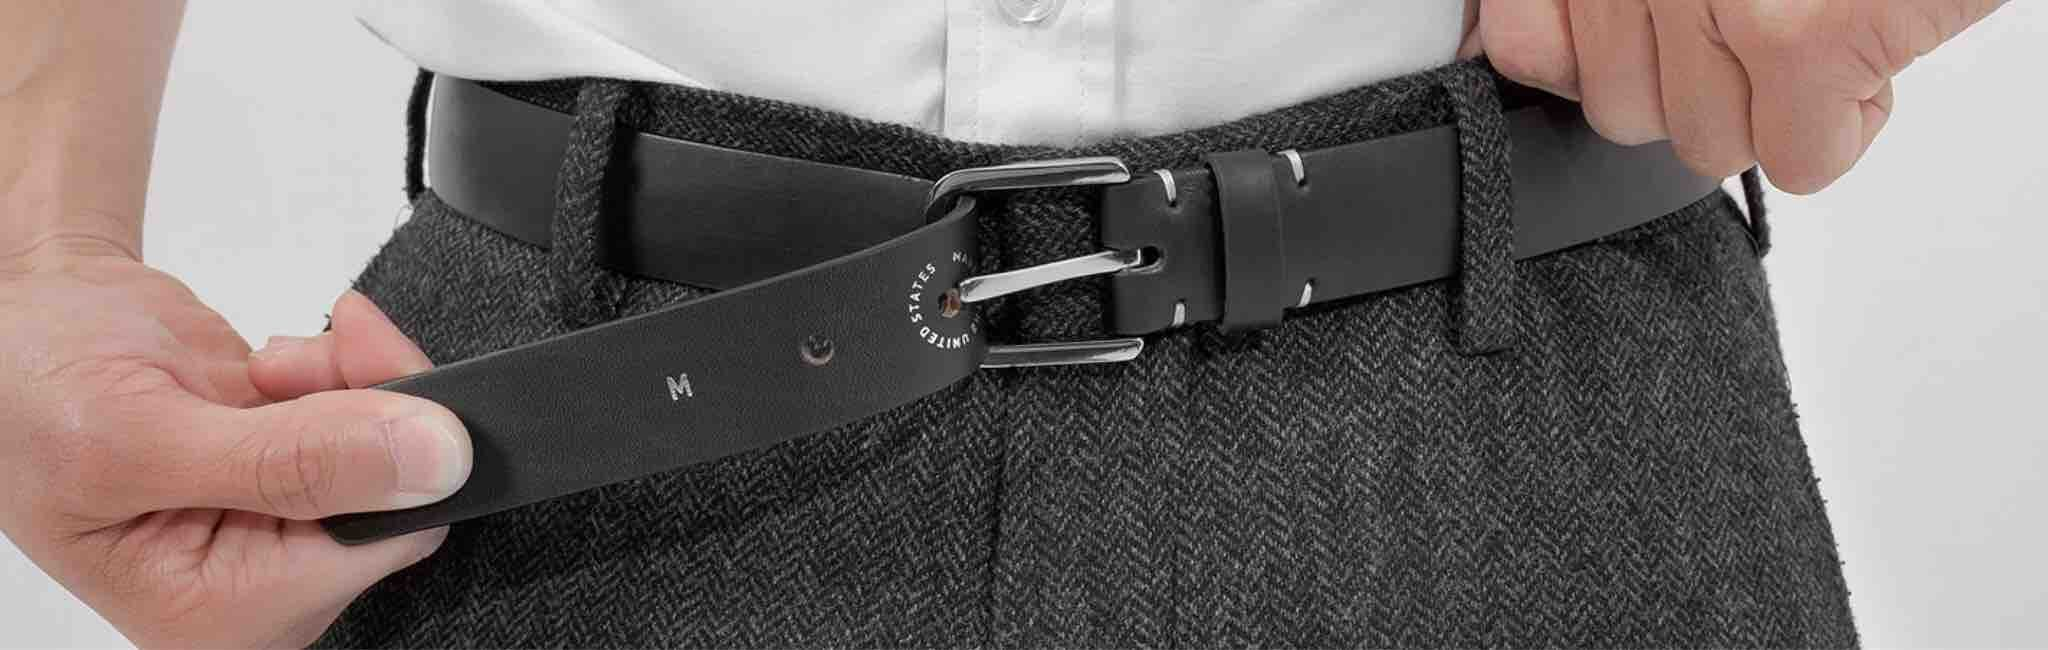 How to determine your belt size method 1 the most widely